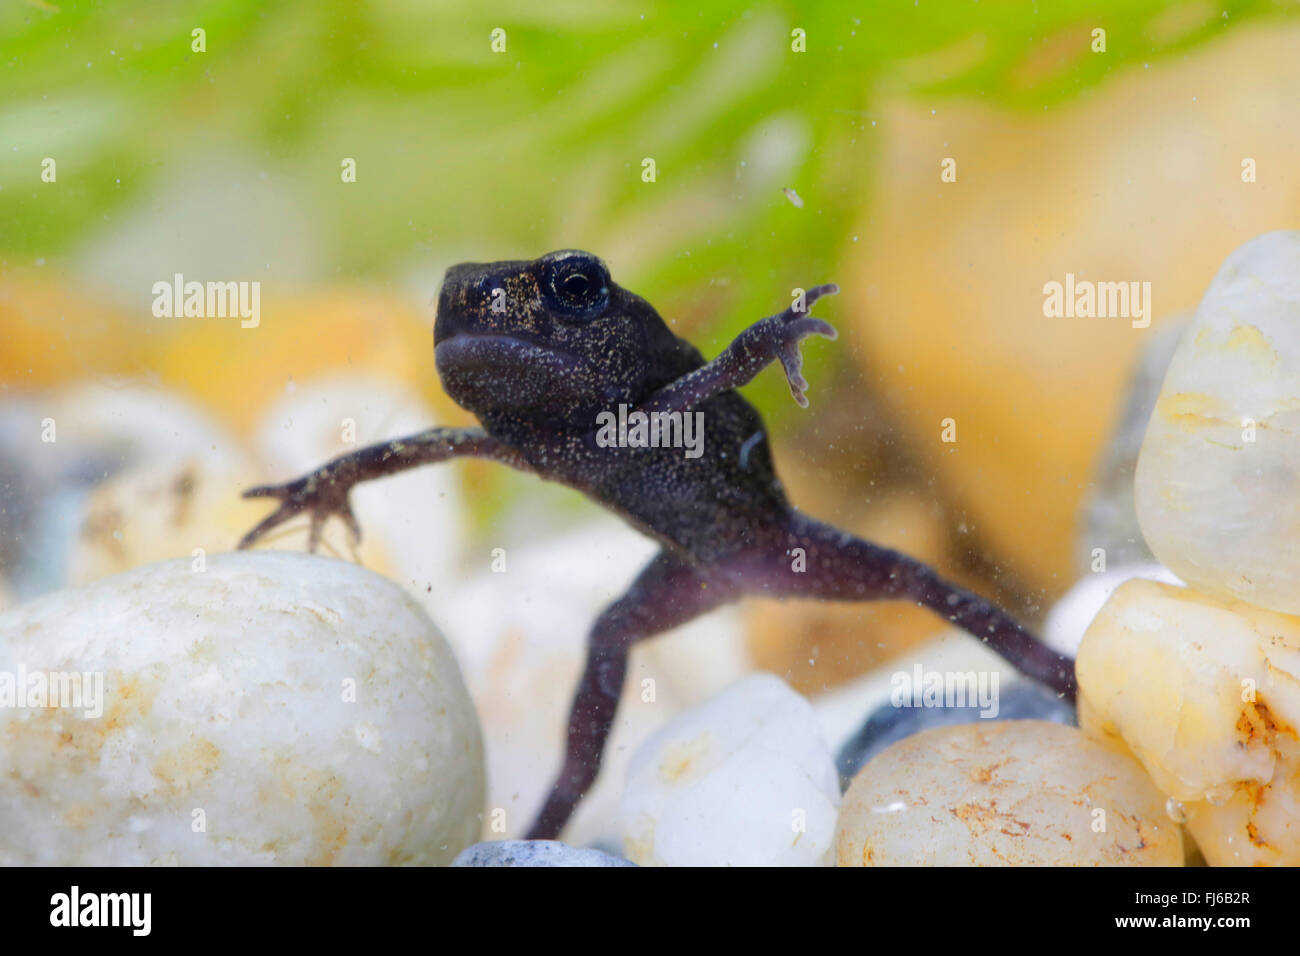 European common toad (Bufo bufo), fully developed young toad, under water photo, Germany, Bavaria - Stock Image